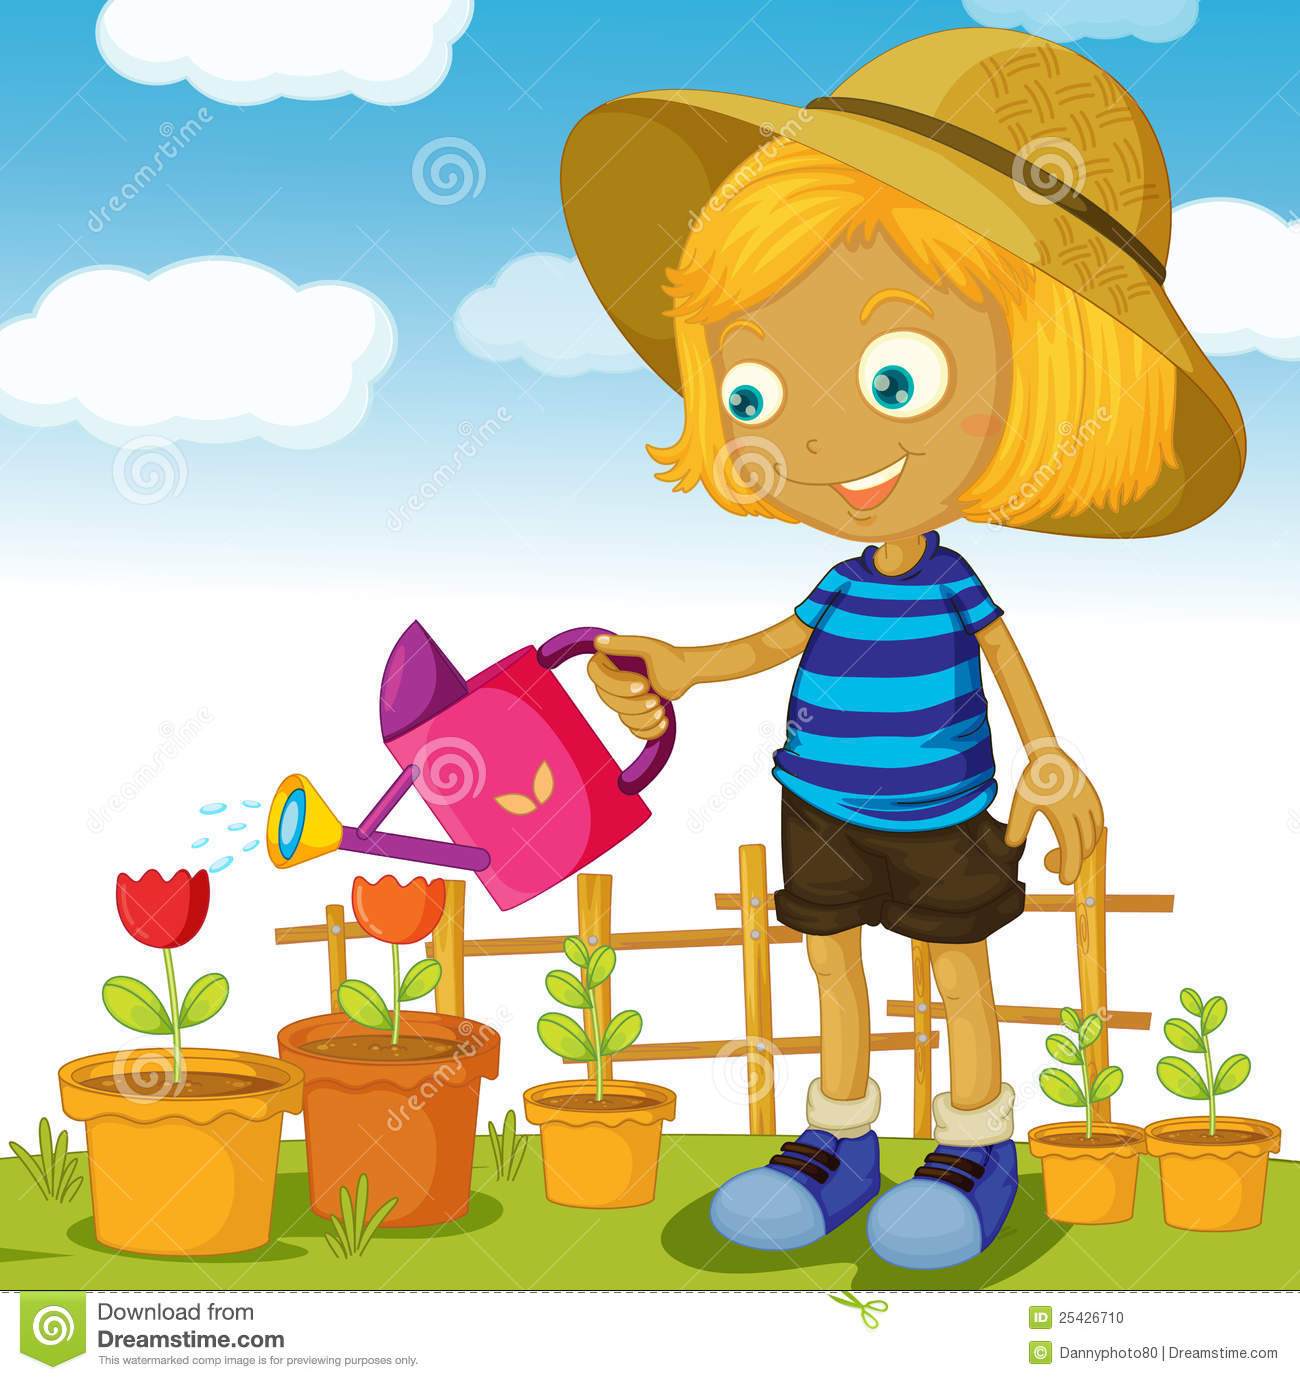 Uses Of Water For Kids Clipart.